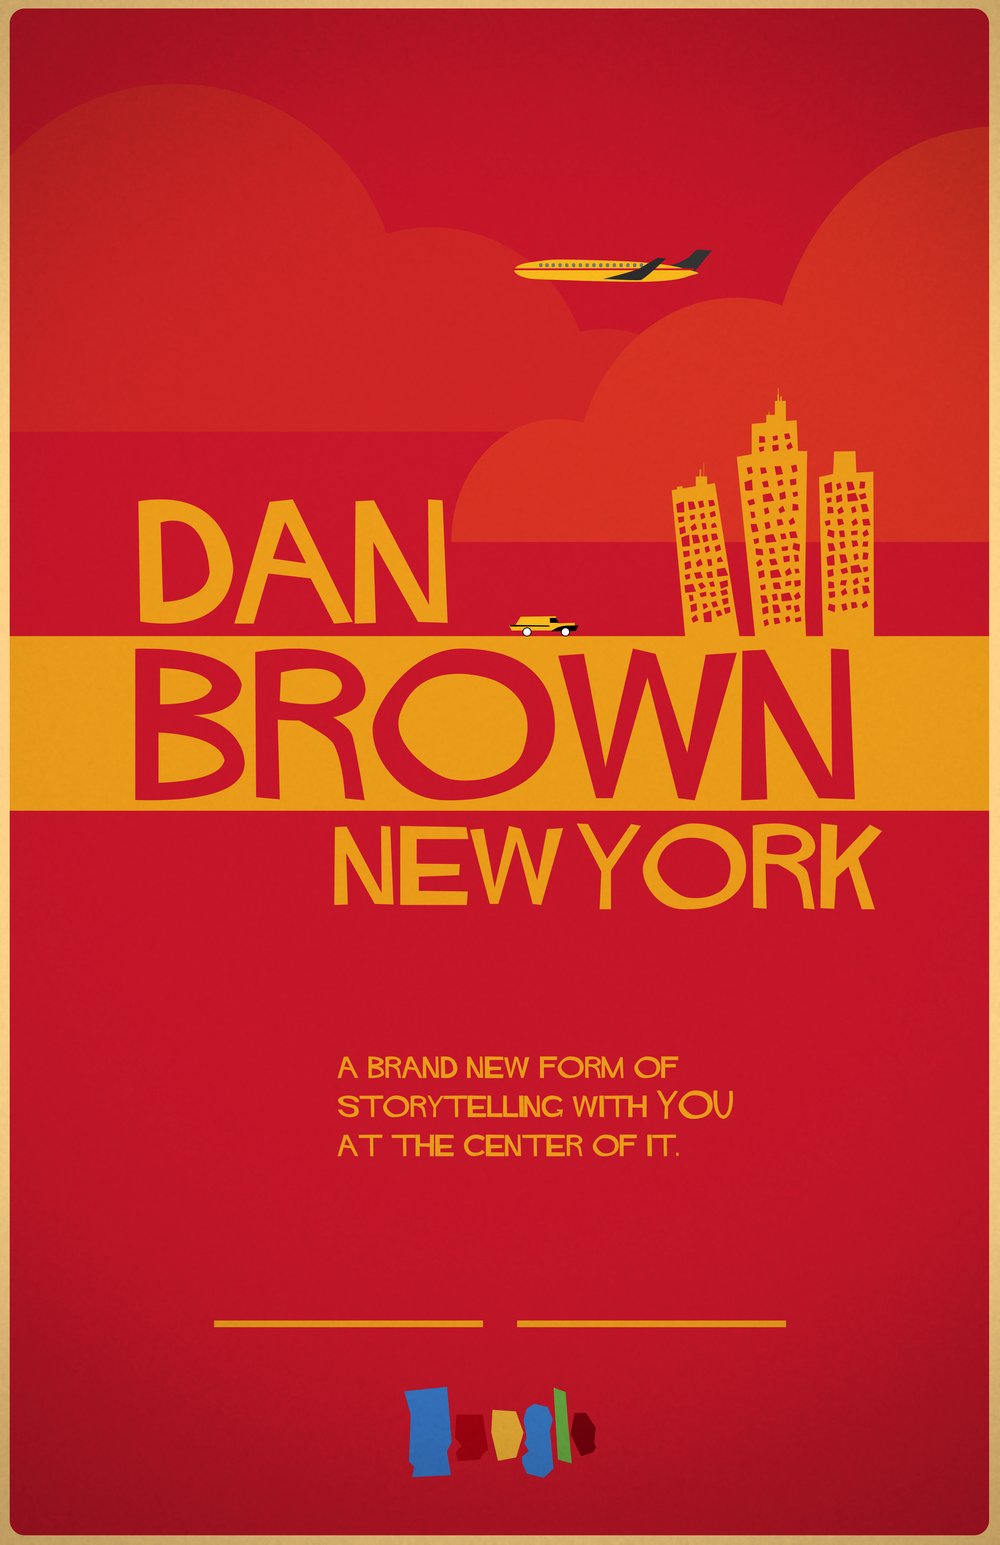 Poster design new york - I Had The Pleasure To Create A Few Poster Designs Book Covers For An Upcoming Google Campaign Featuring Author Dan Brown Dan Brown S New York Is An